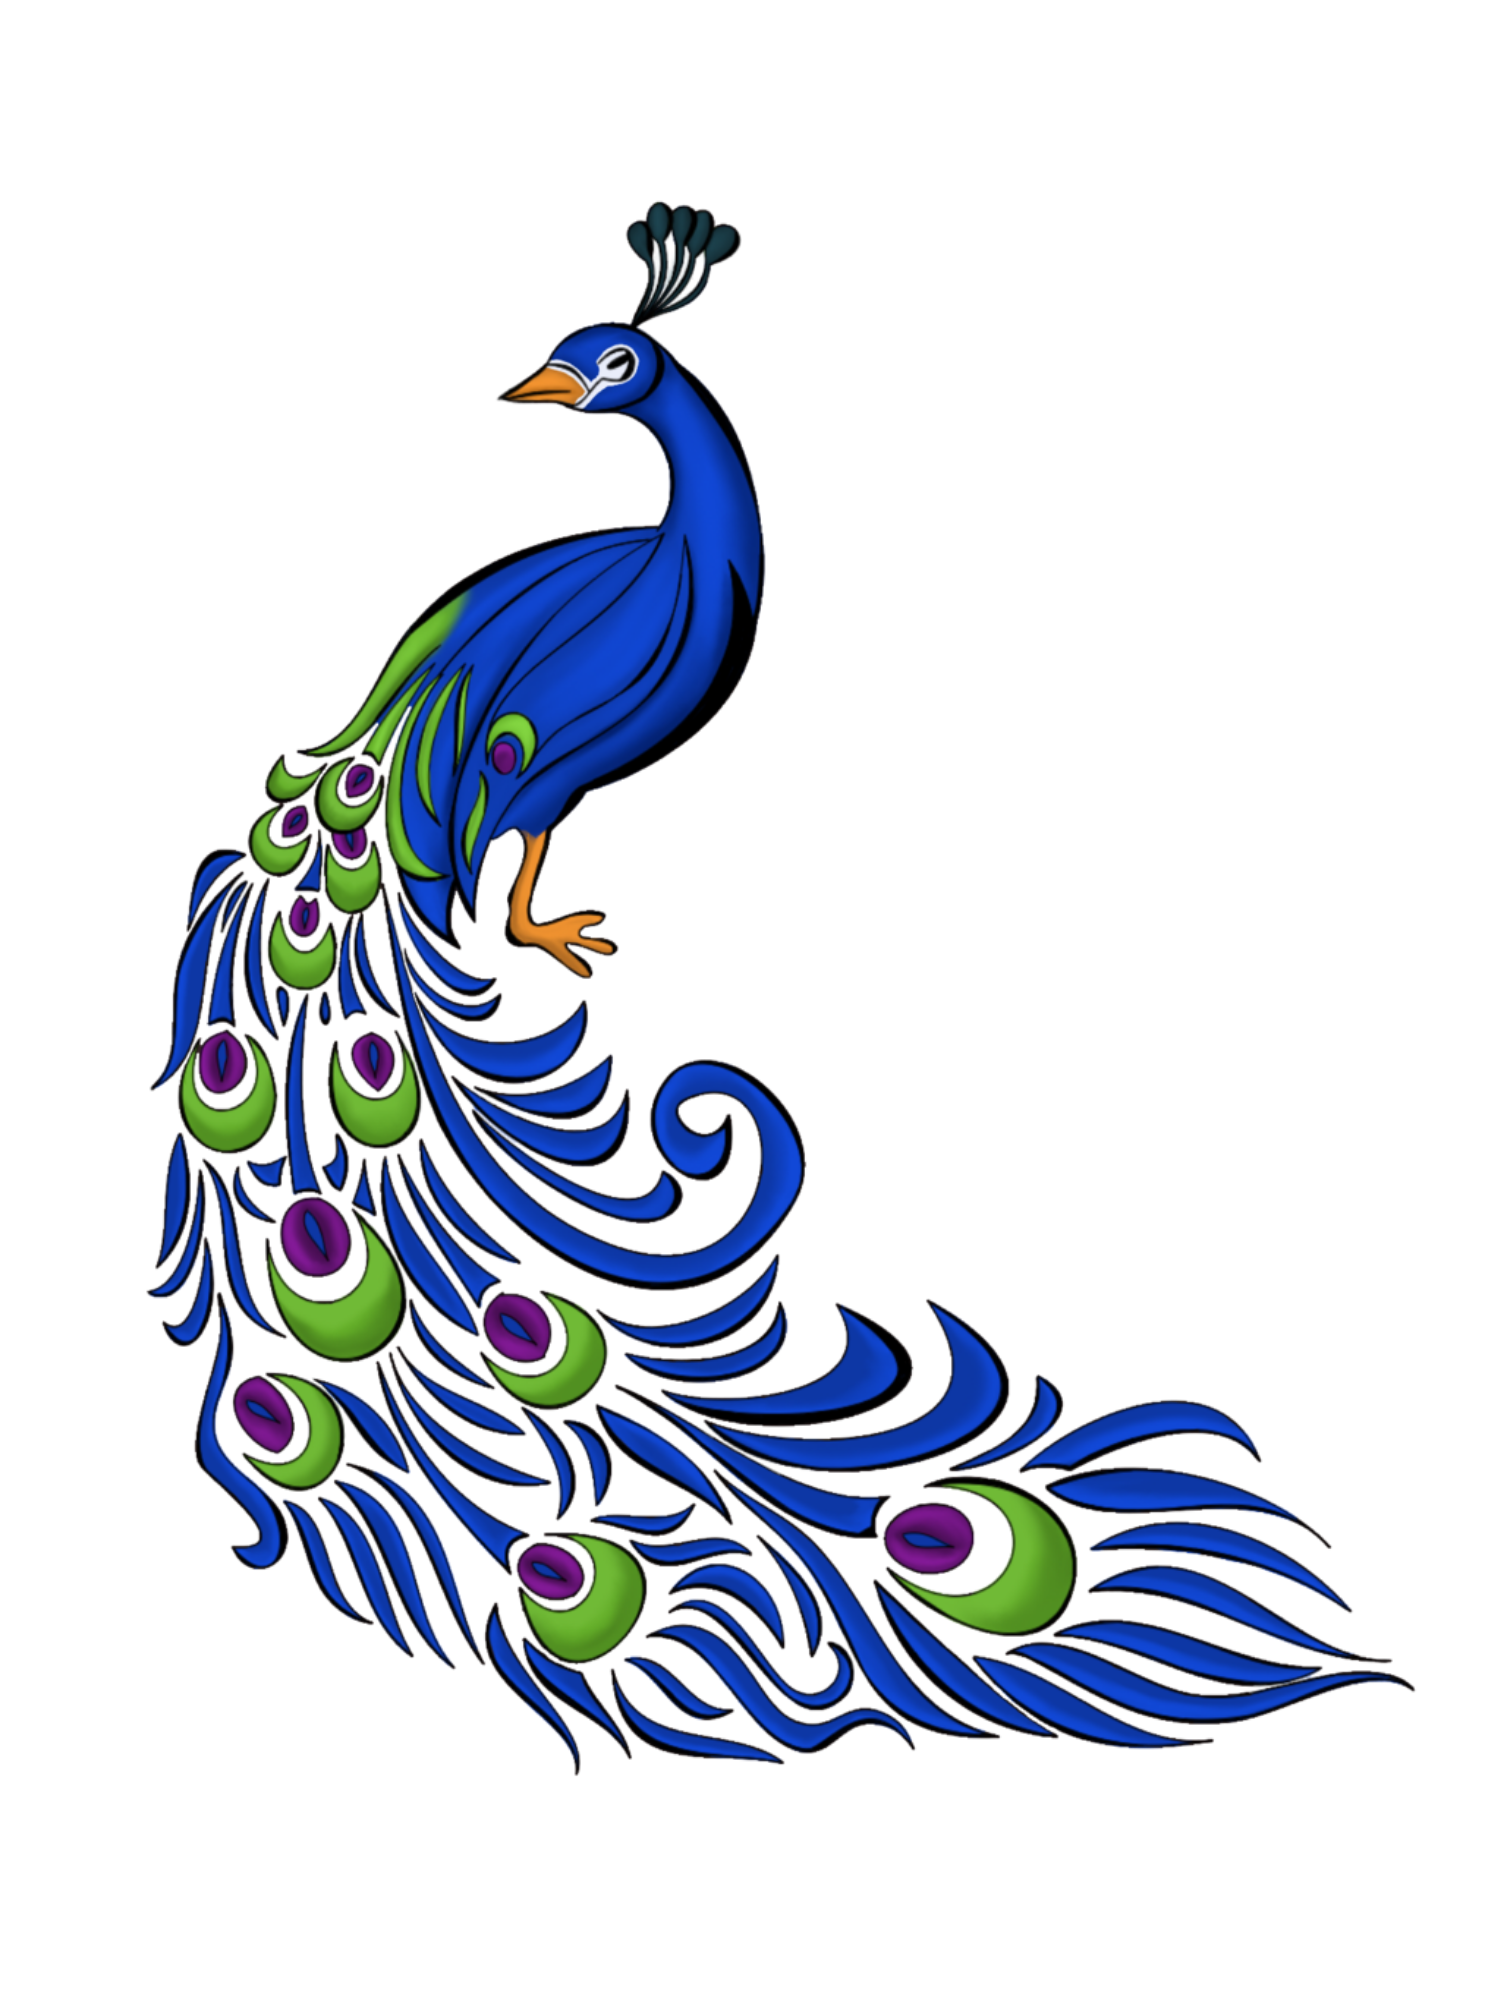 Flute clipart peacock feather, Picture #1130021 flute.